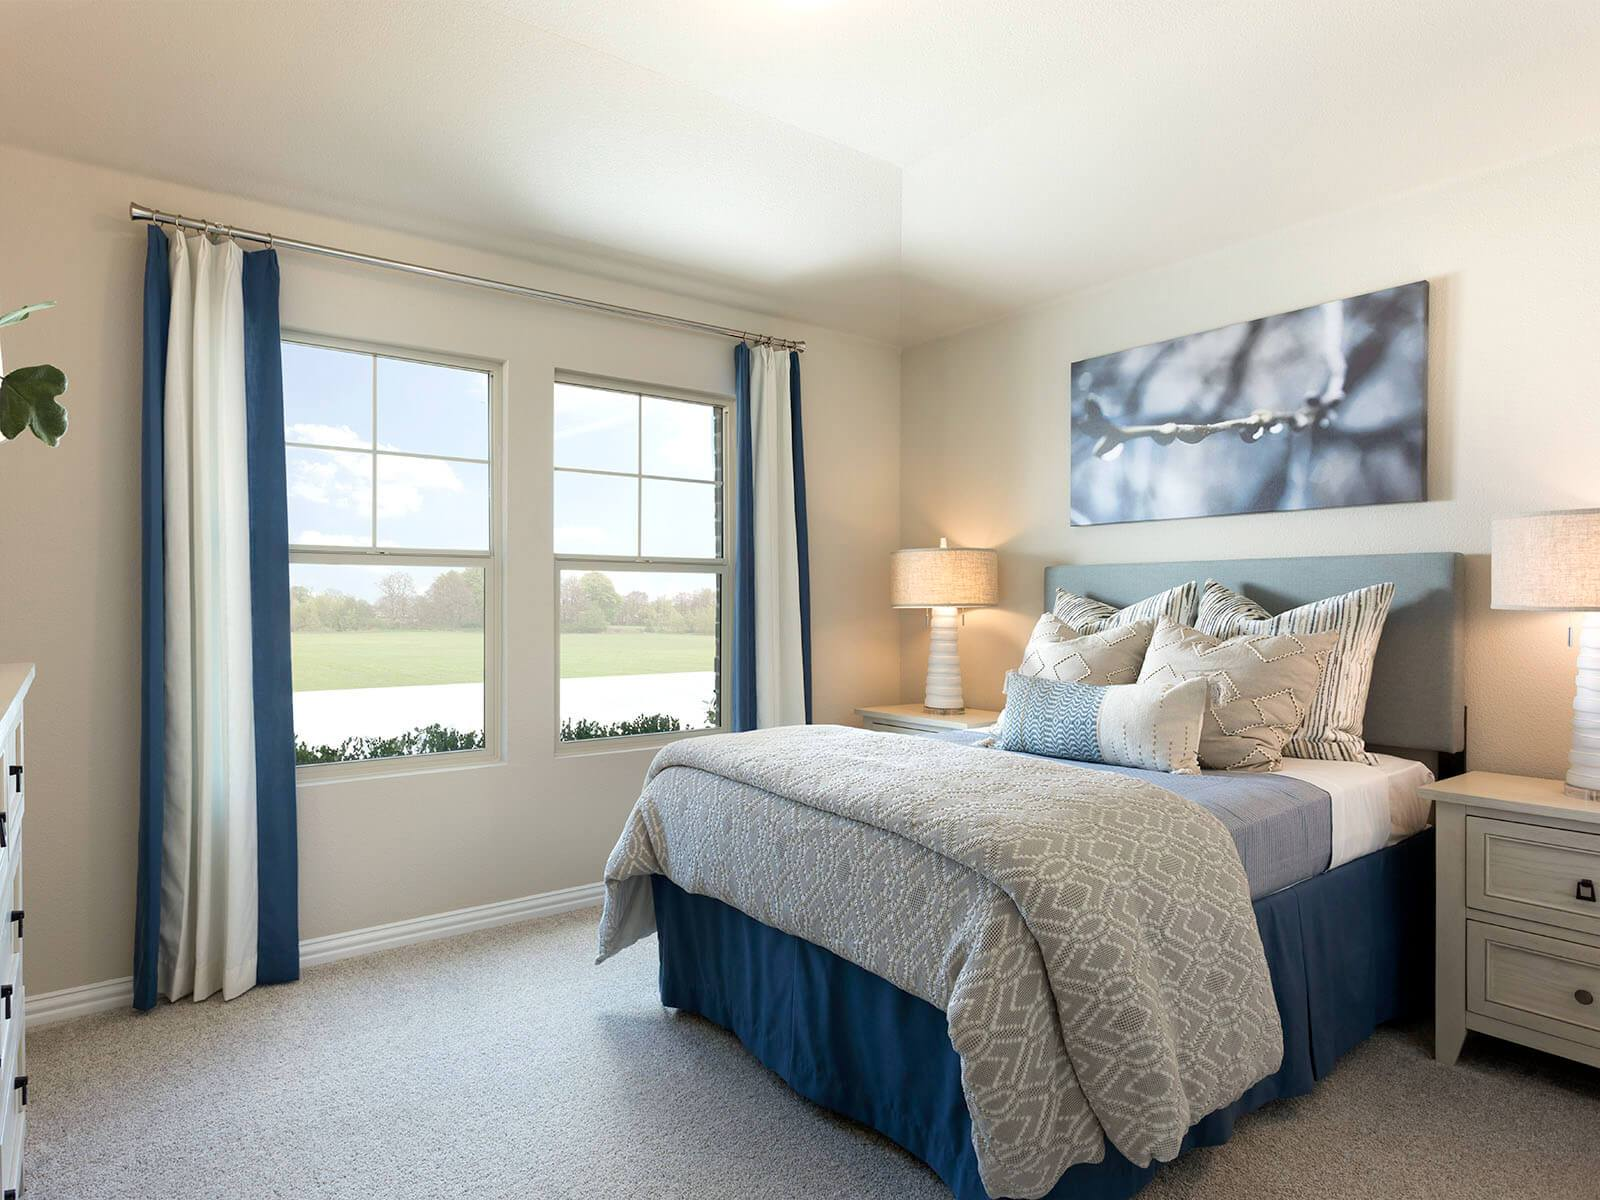 Bedroom featured in The Greenville By Meritage Homes in Fort Worth, TX